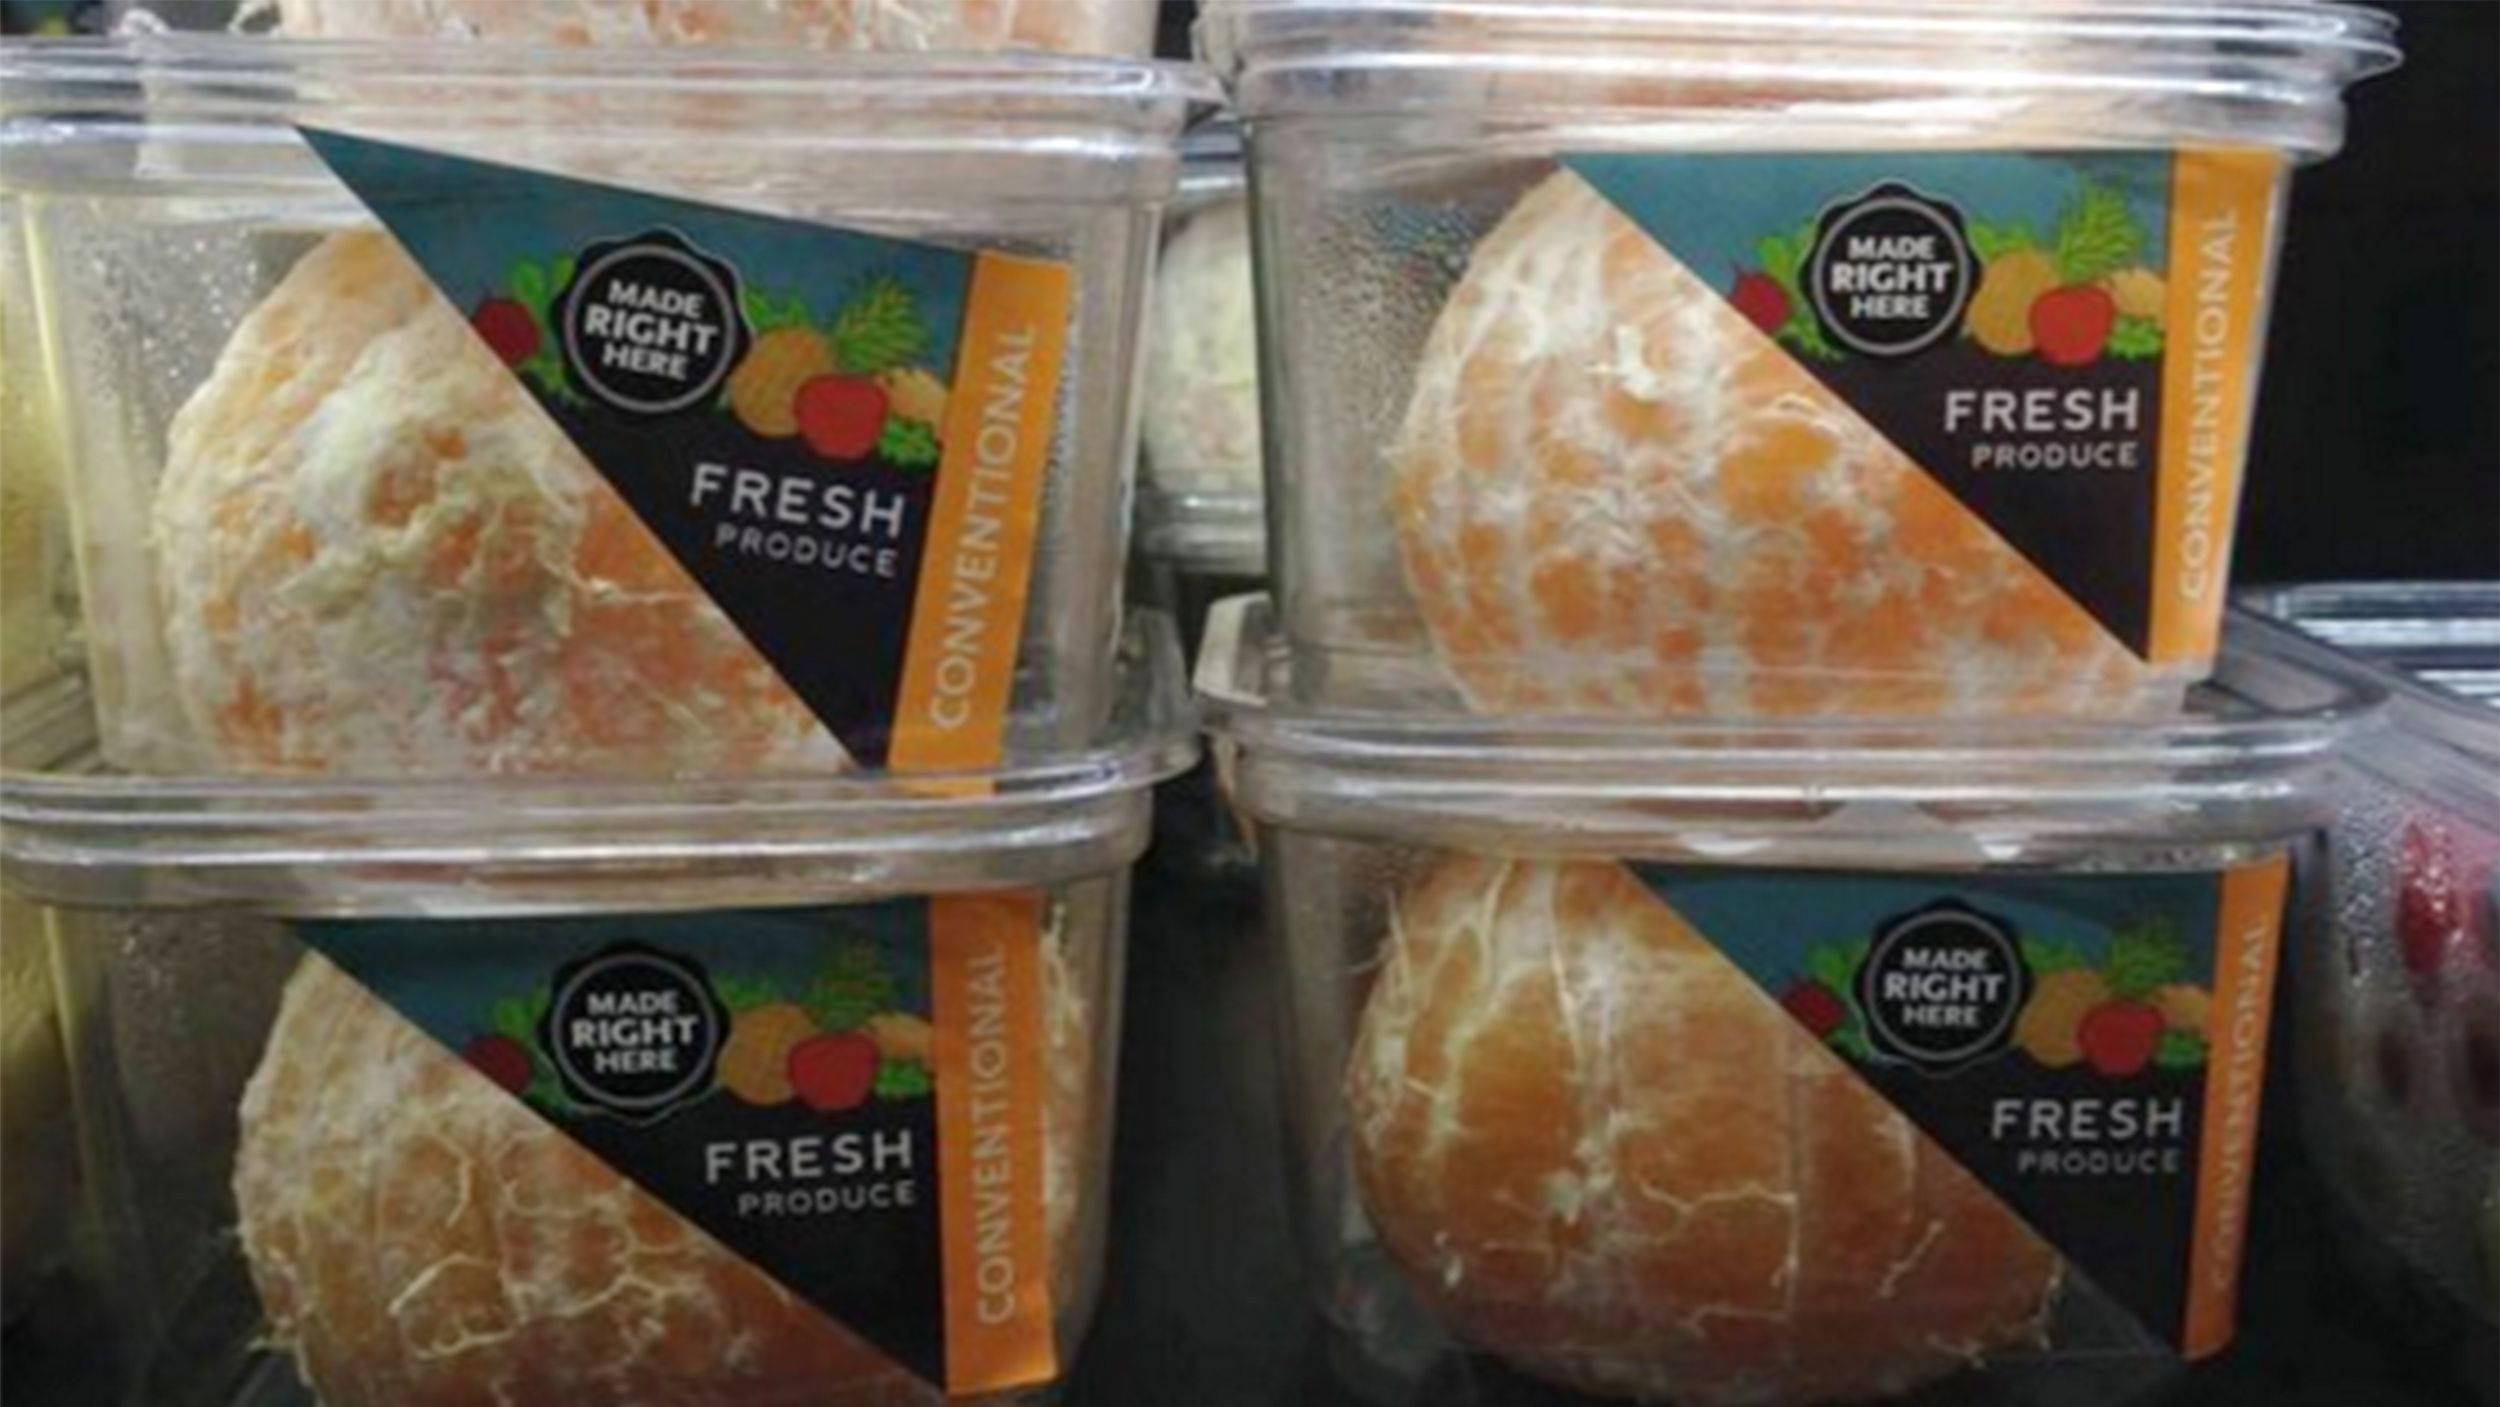 Orange you sorry whole foods store shamed for selling